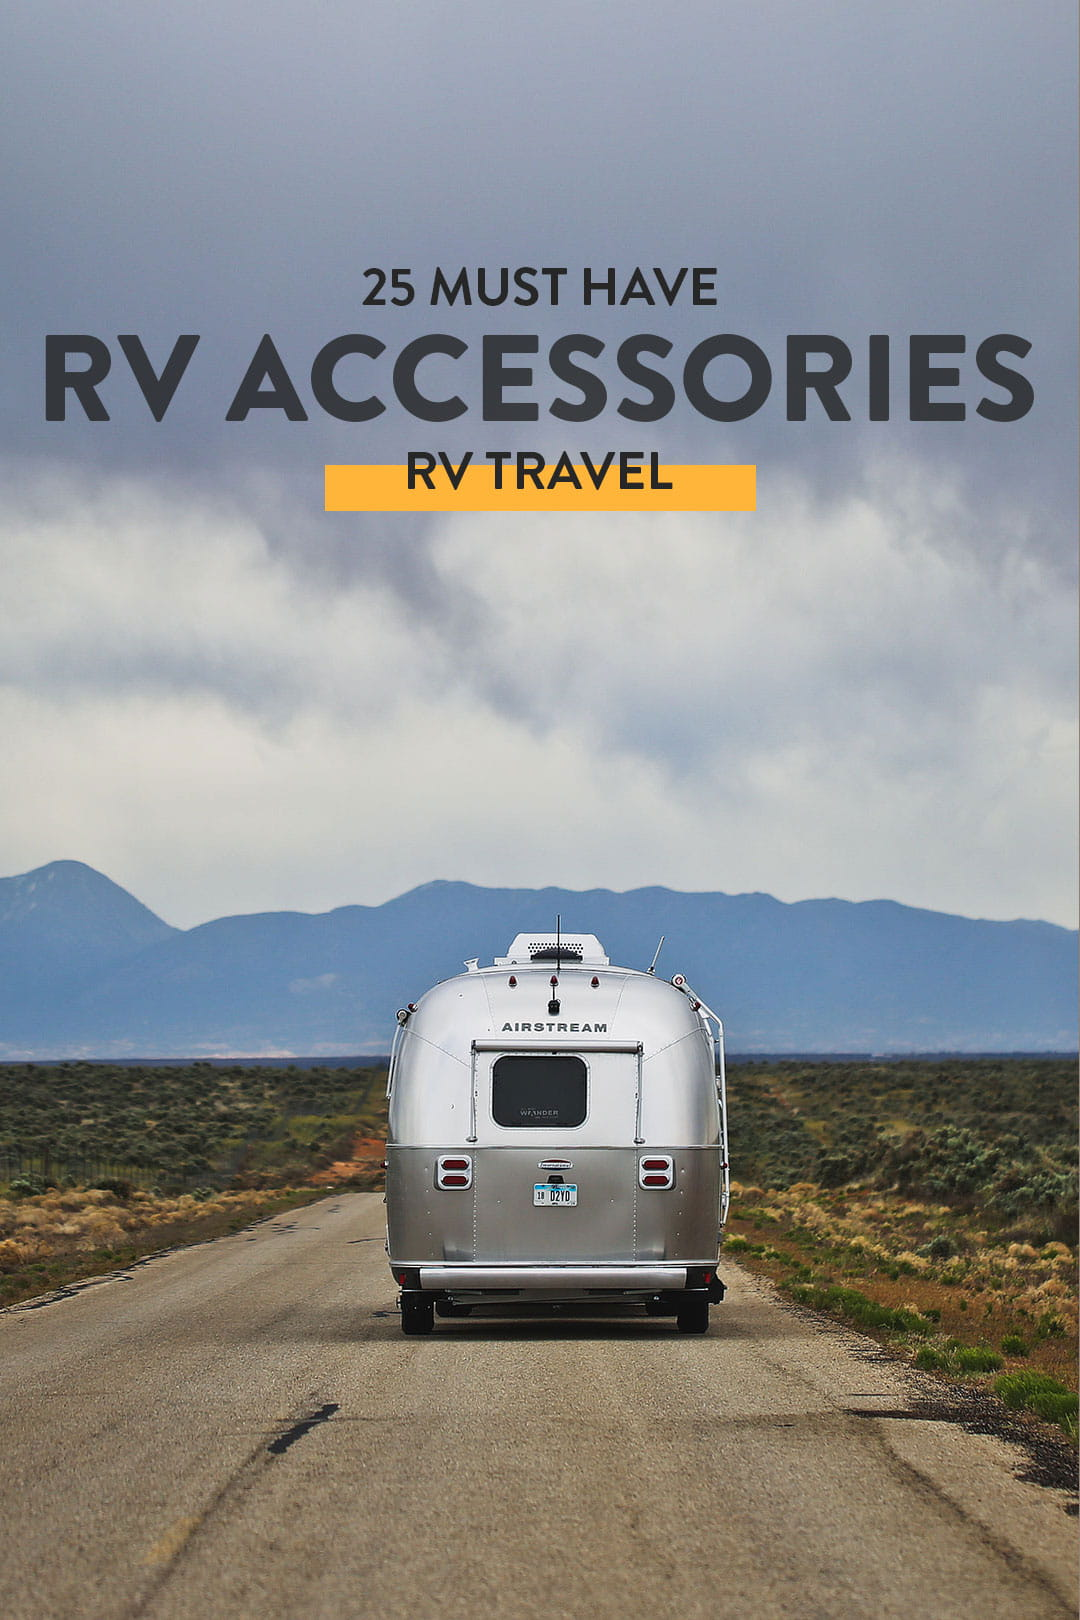 25 Must Have RV Accessories to Make Life on the Road Easier